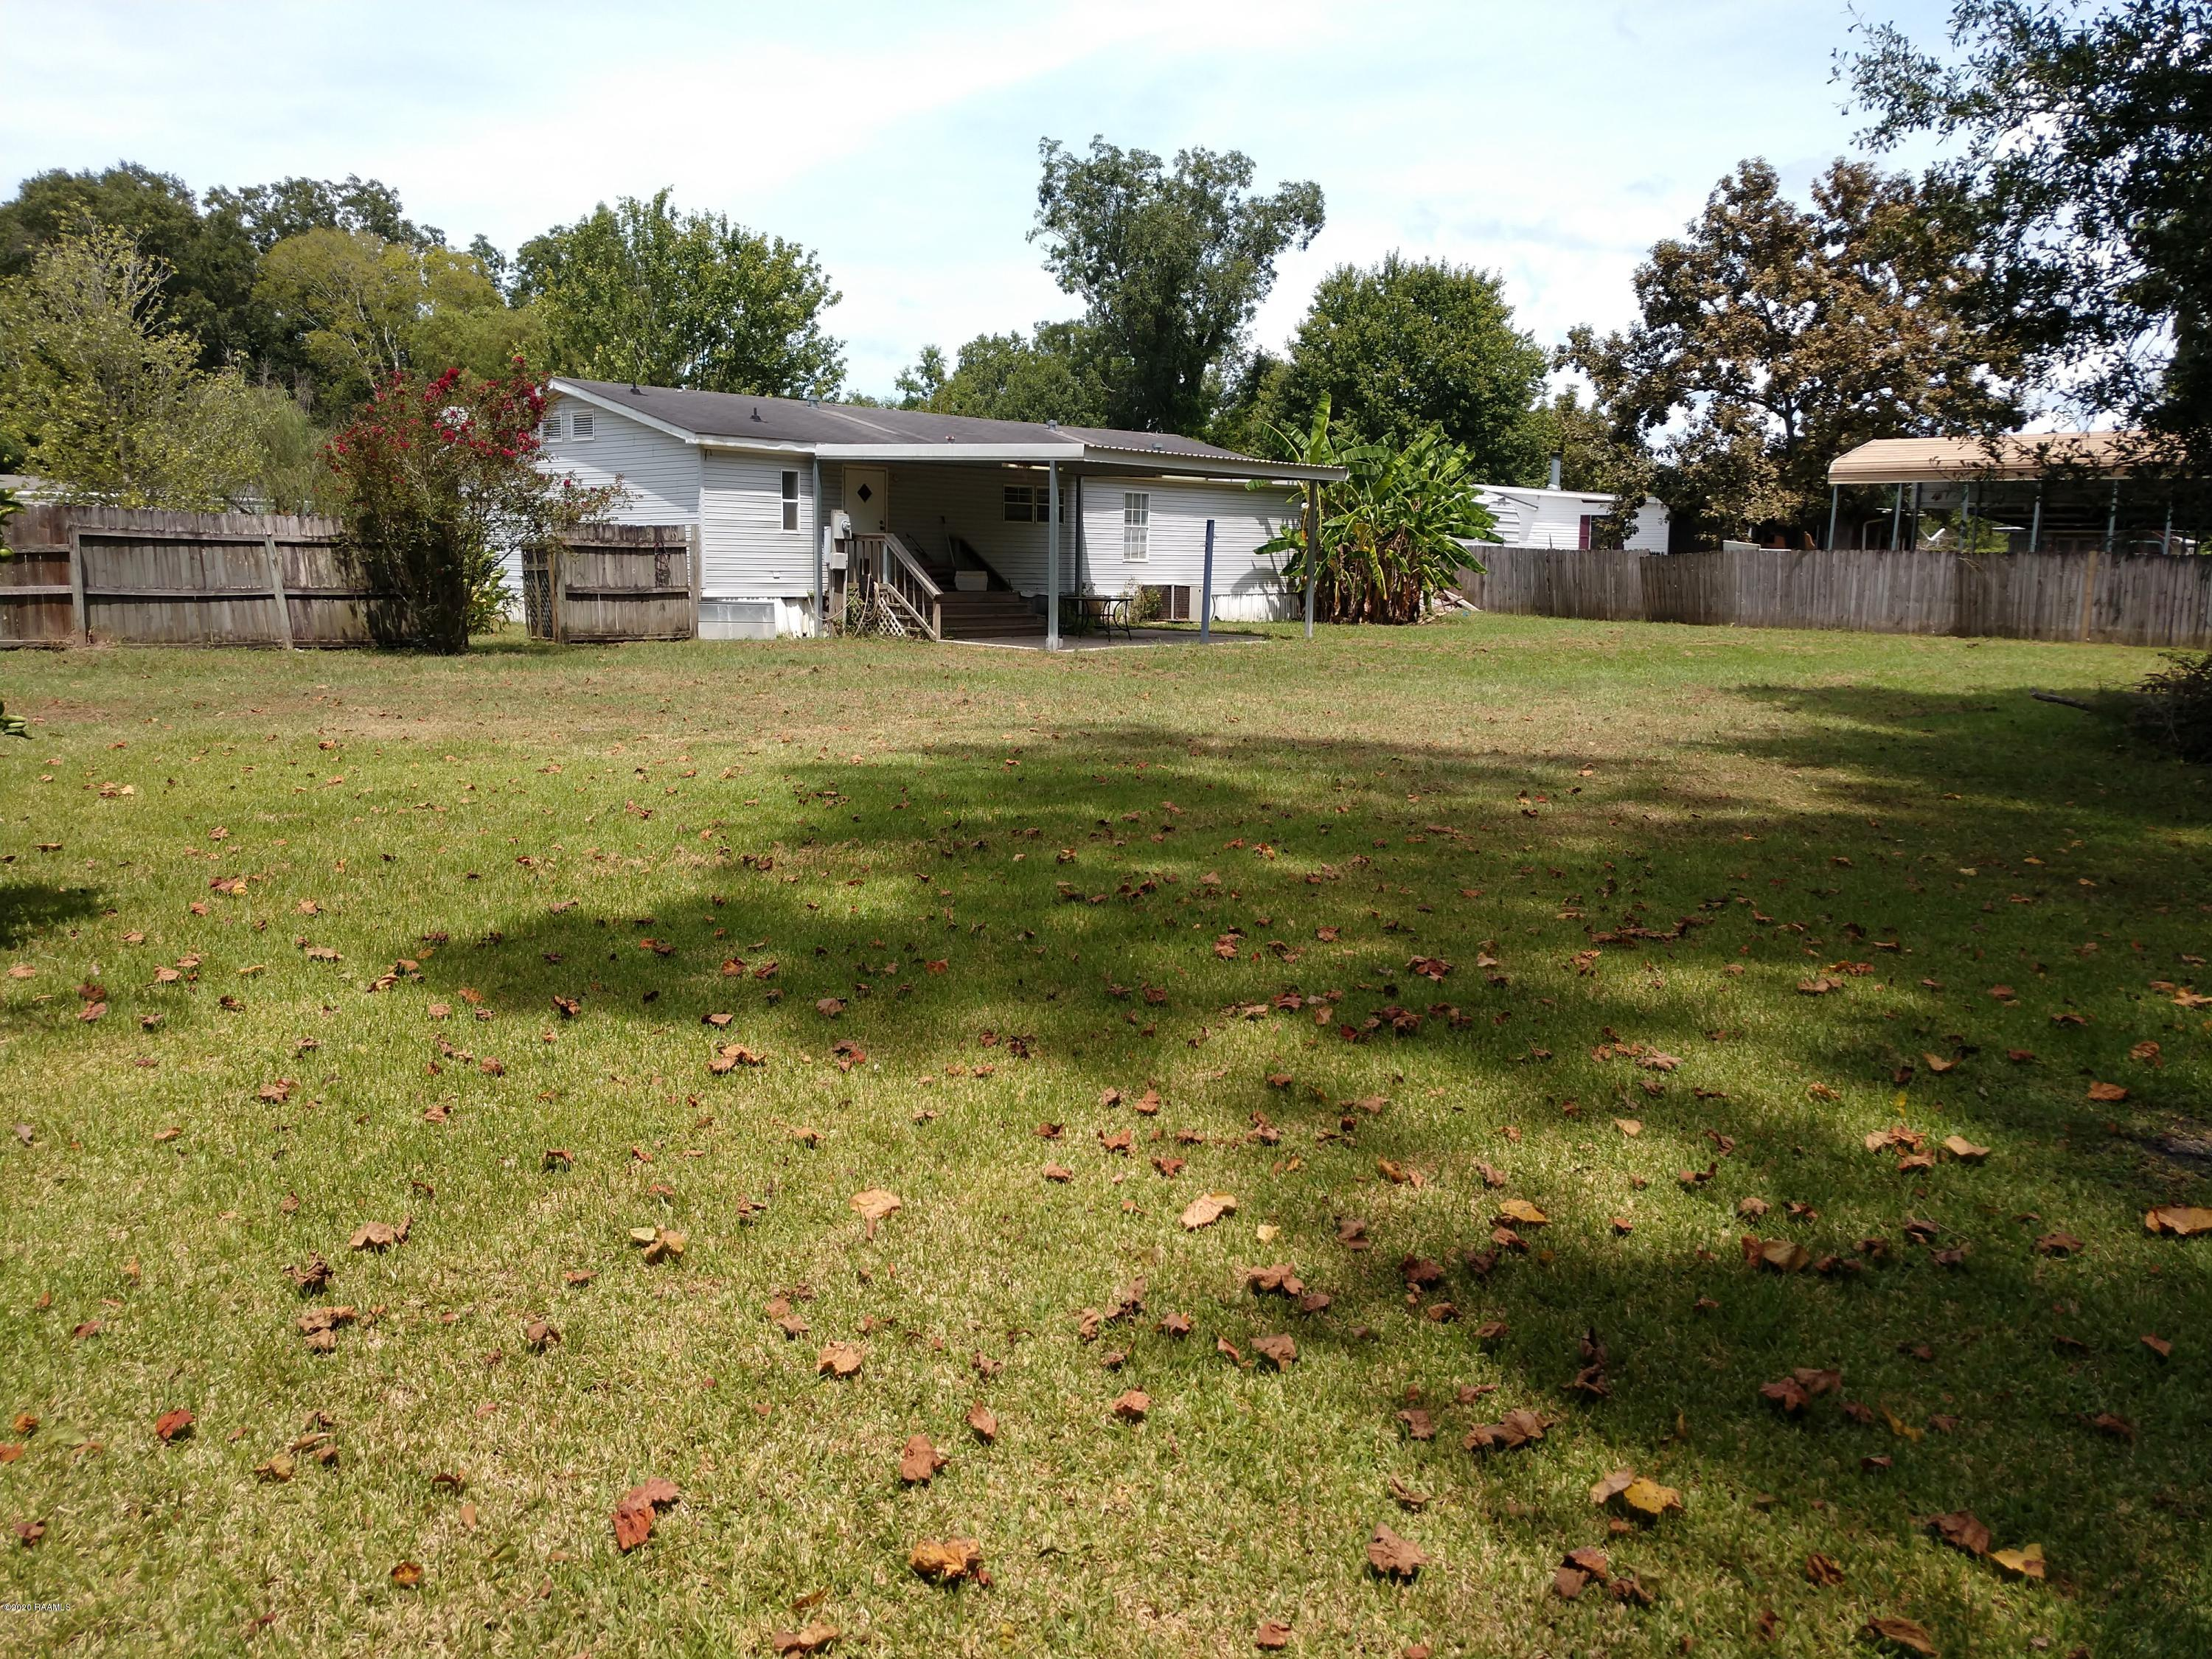 1043 Orchard Park Drive, Breaux Bridge, LA 70517 Photo #9